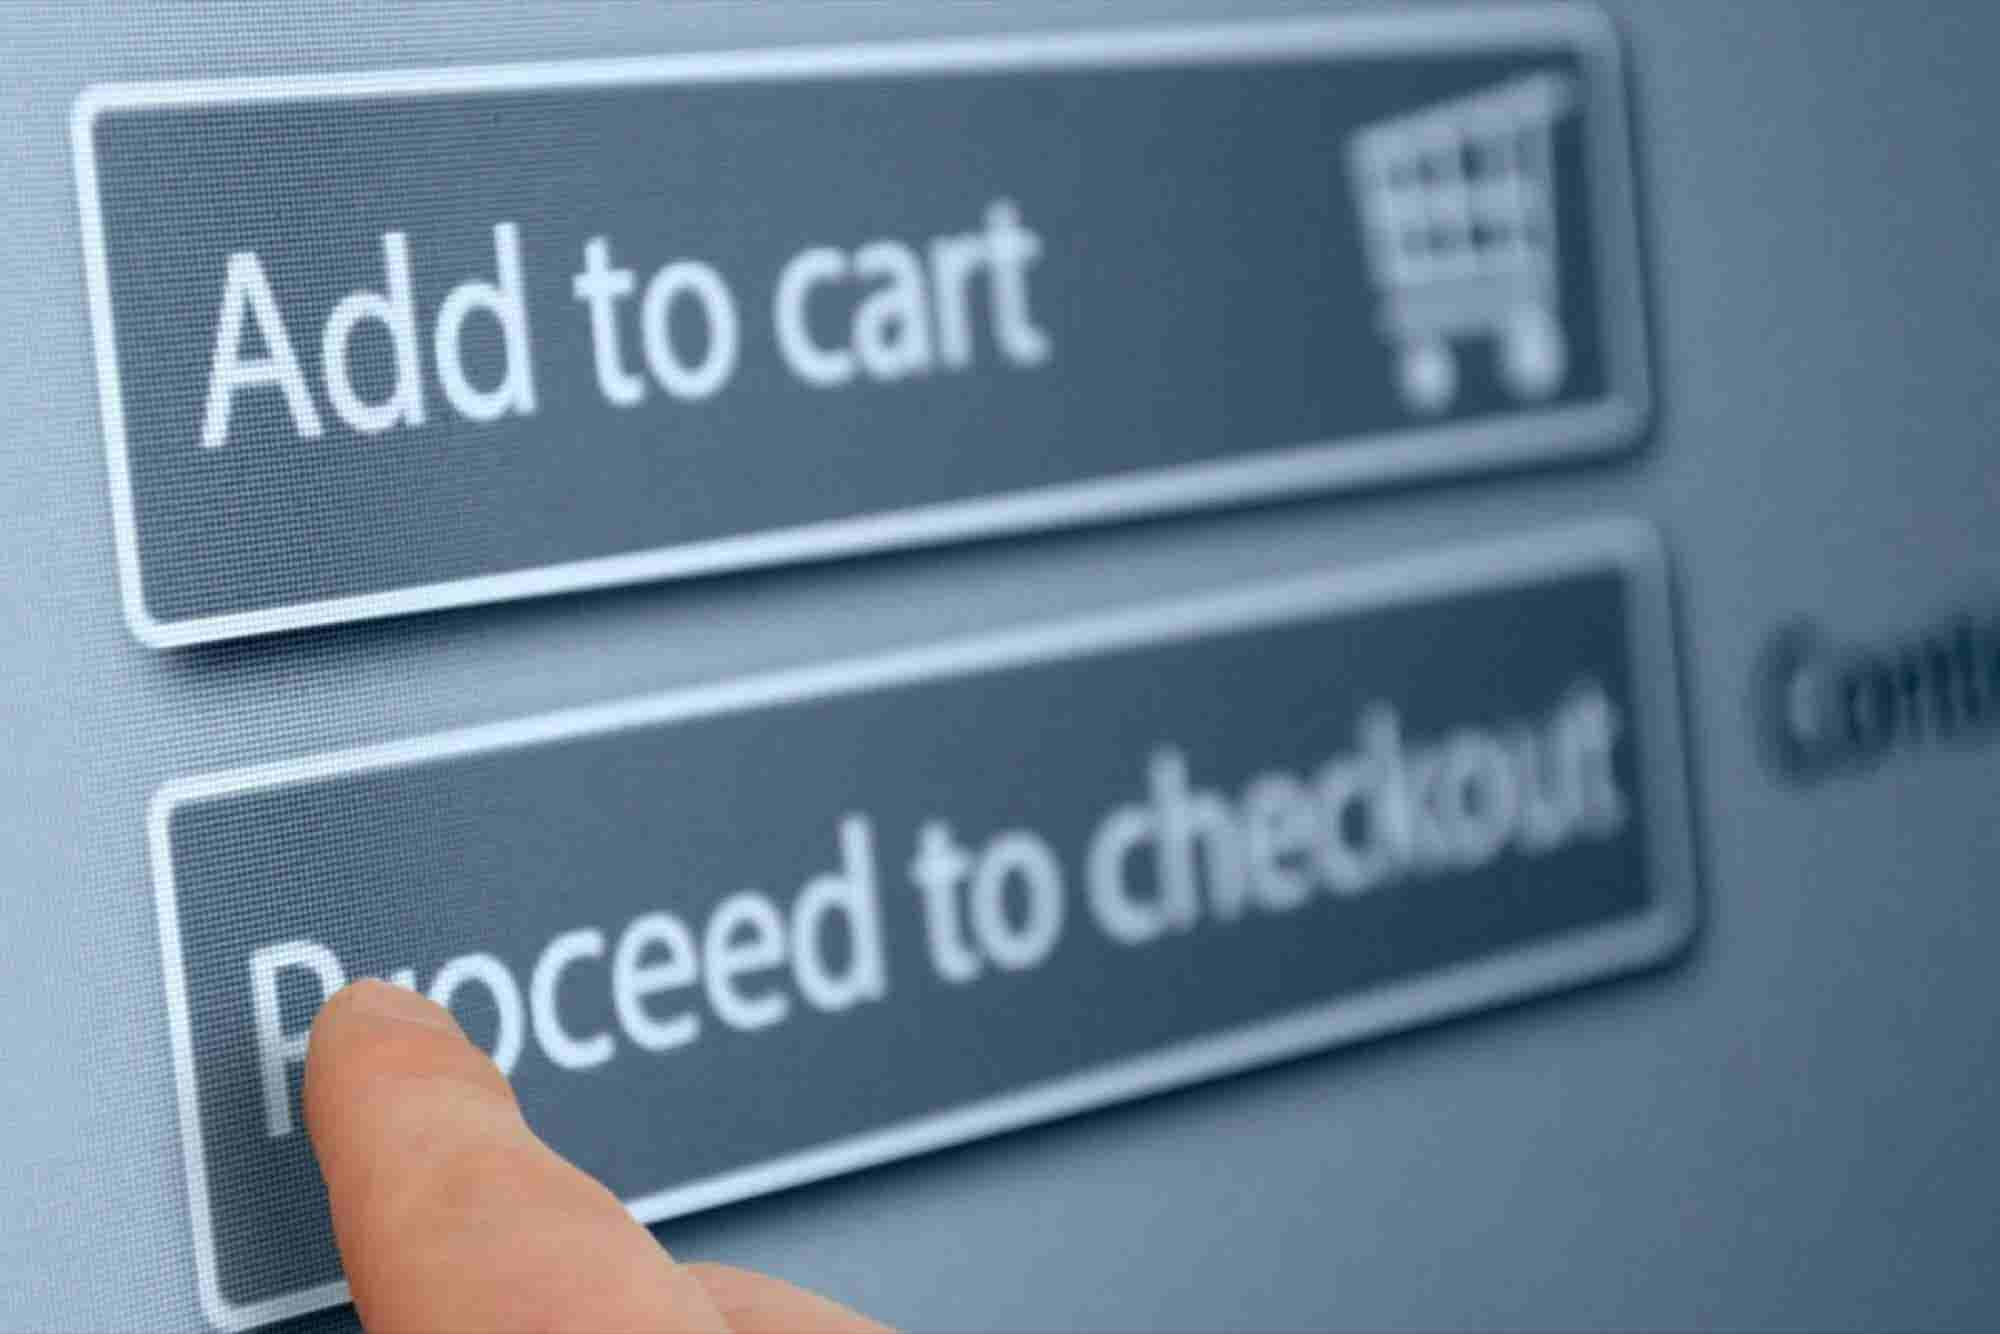 The Future of Ecommerce Will Focus on Creating Experiences